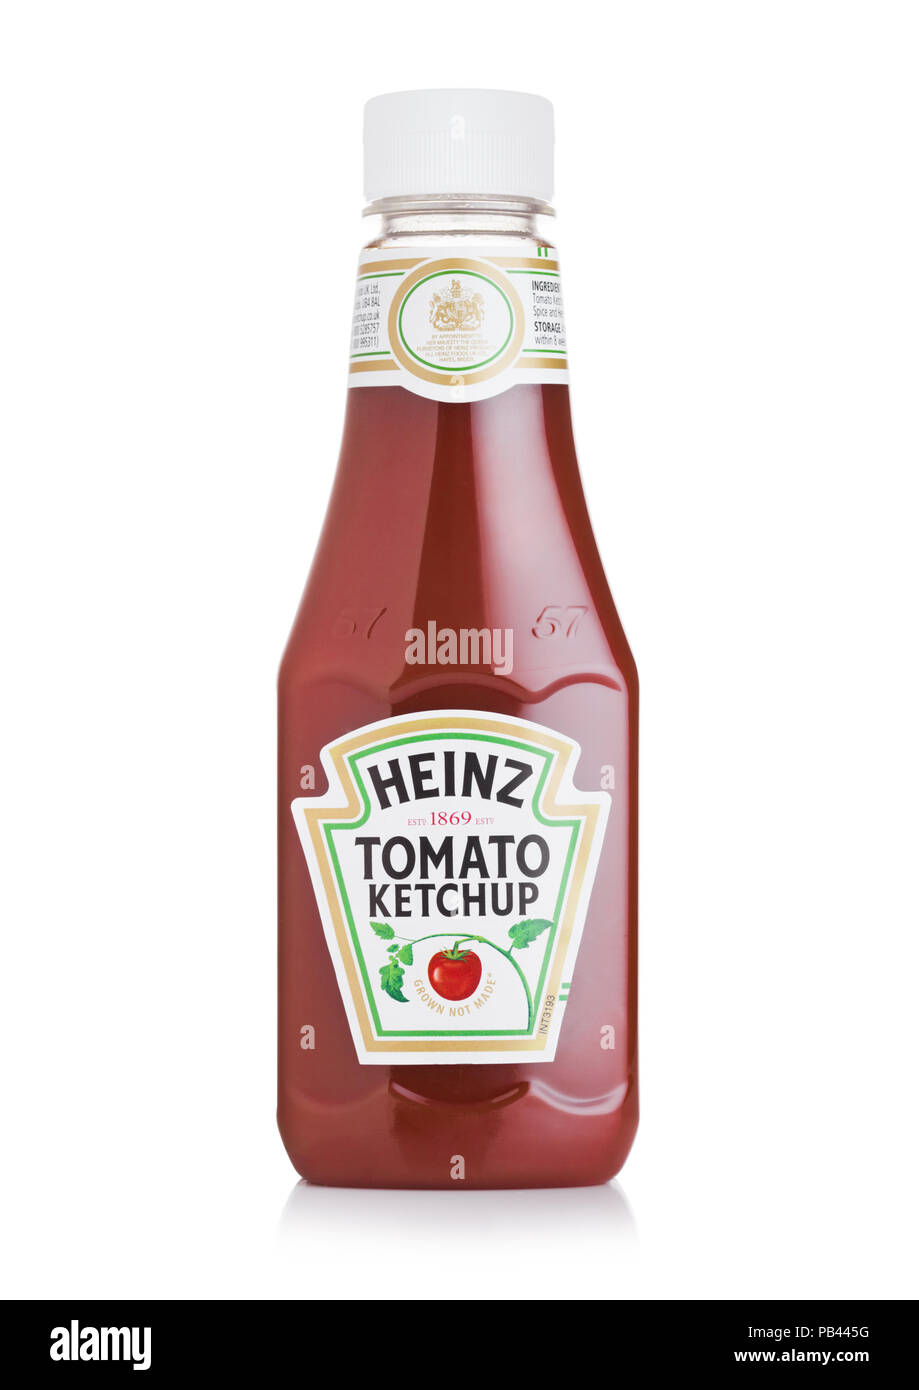 LONDON, UK - JULY 28, 2018: A bottle of Heinz Ketchup on white background. Stock Photo